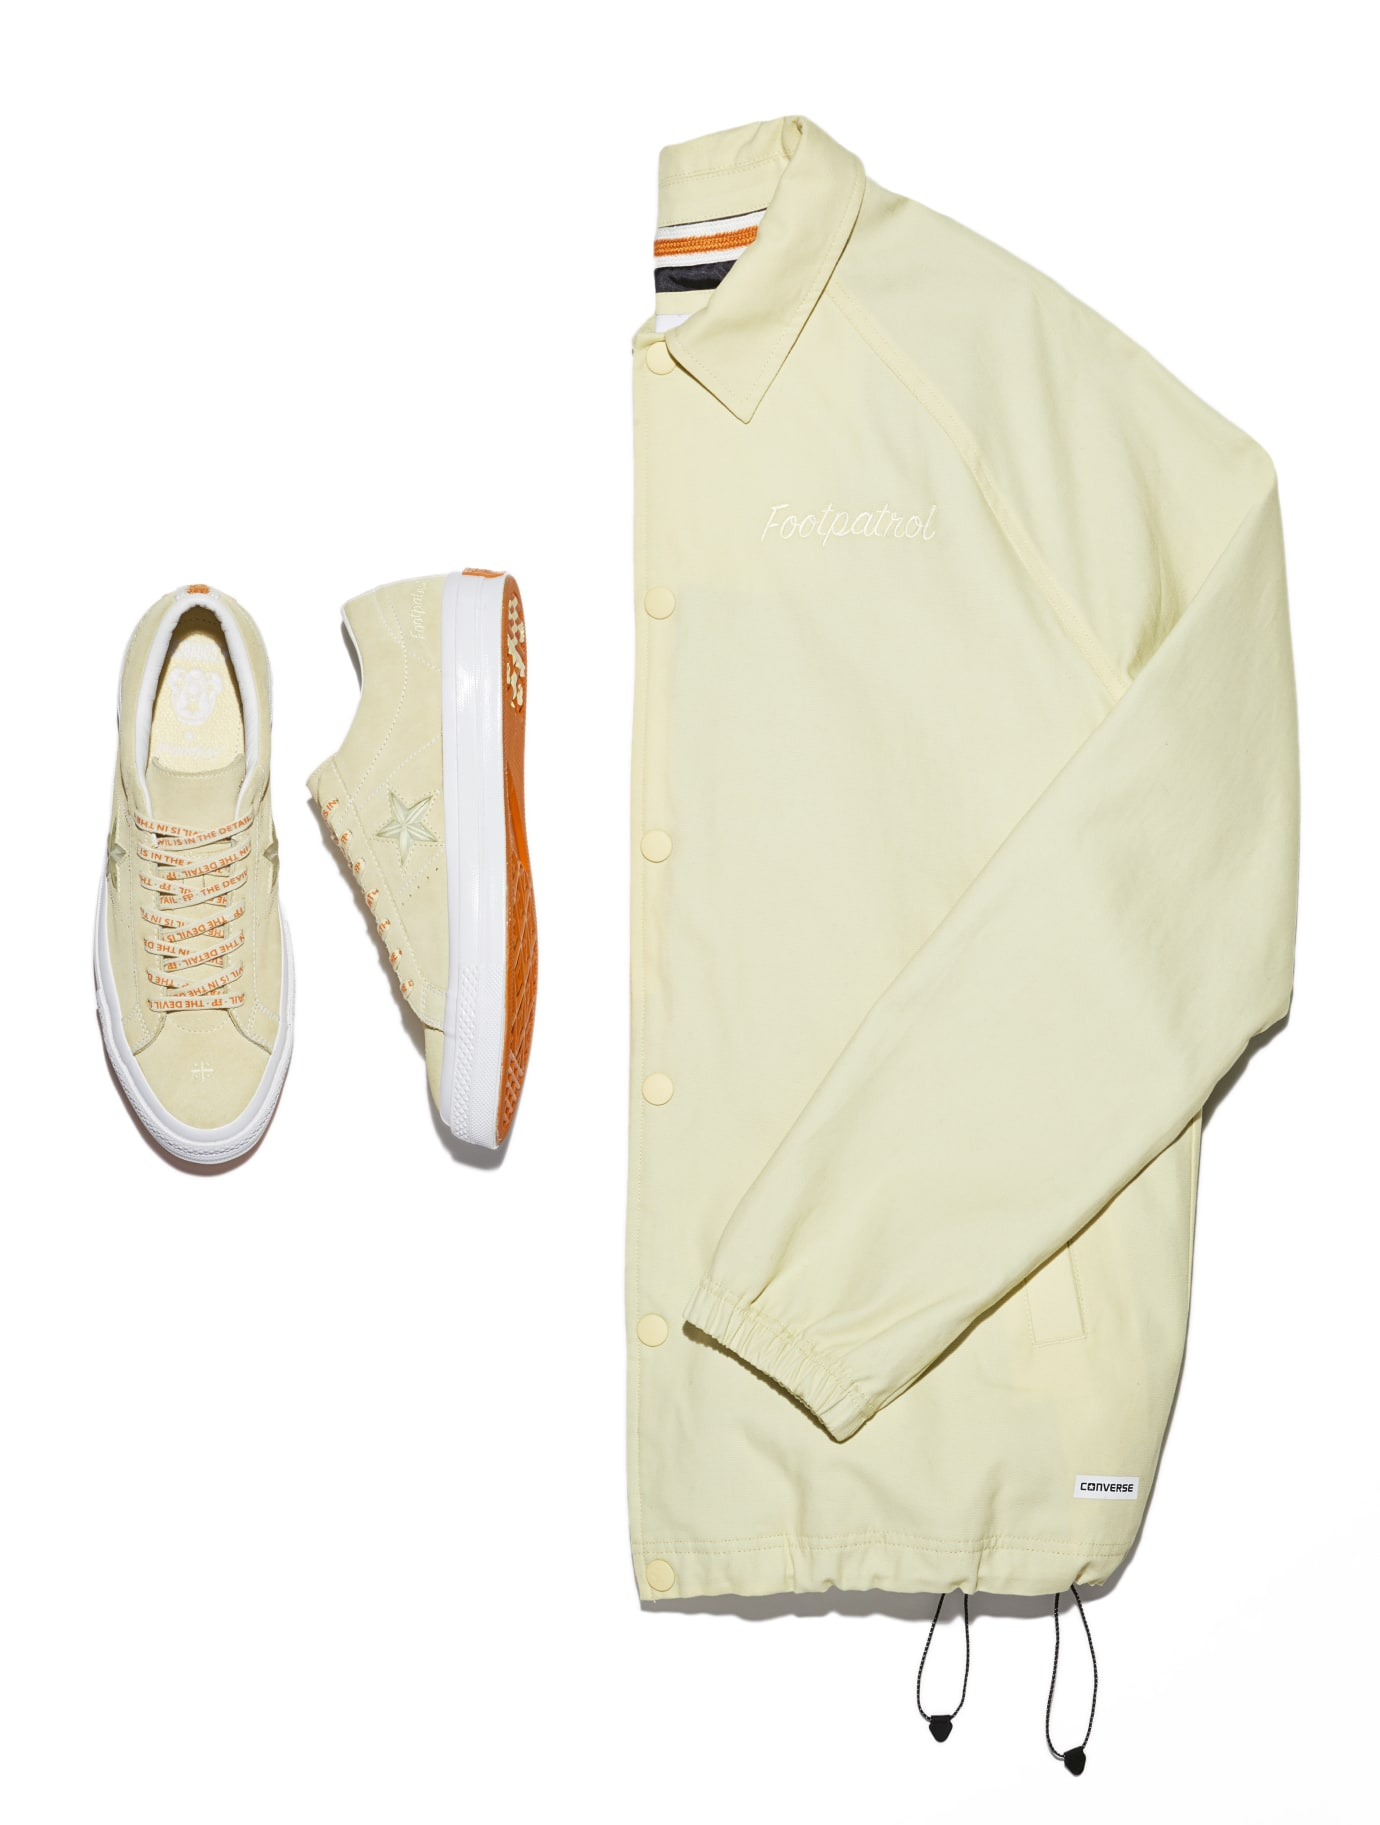 Converse One Star x Footpatrol (Pair/Jacket)